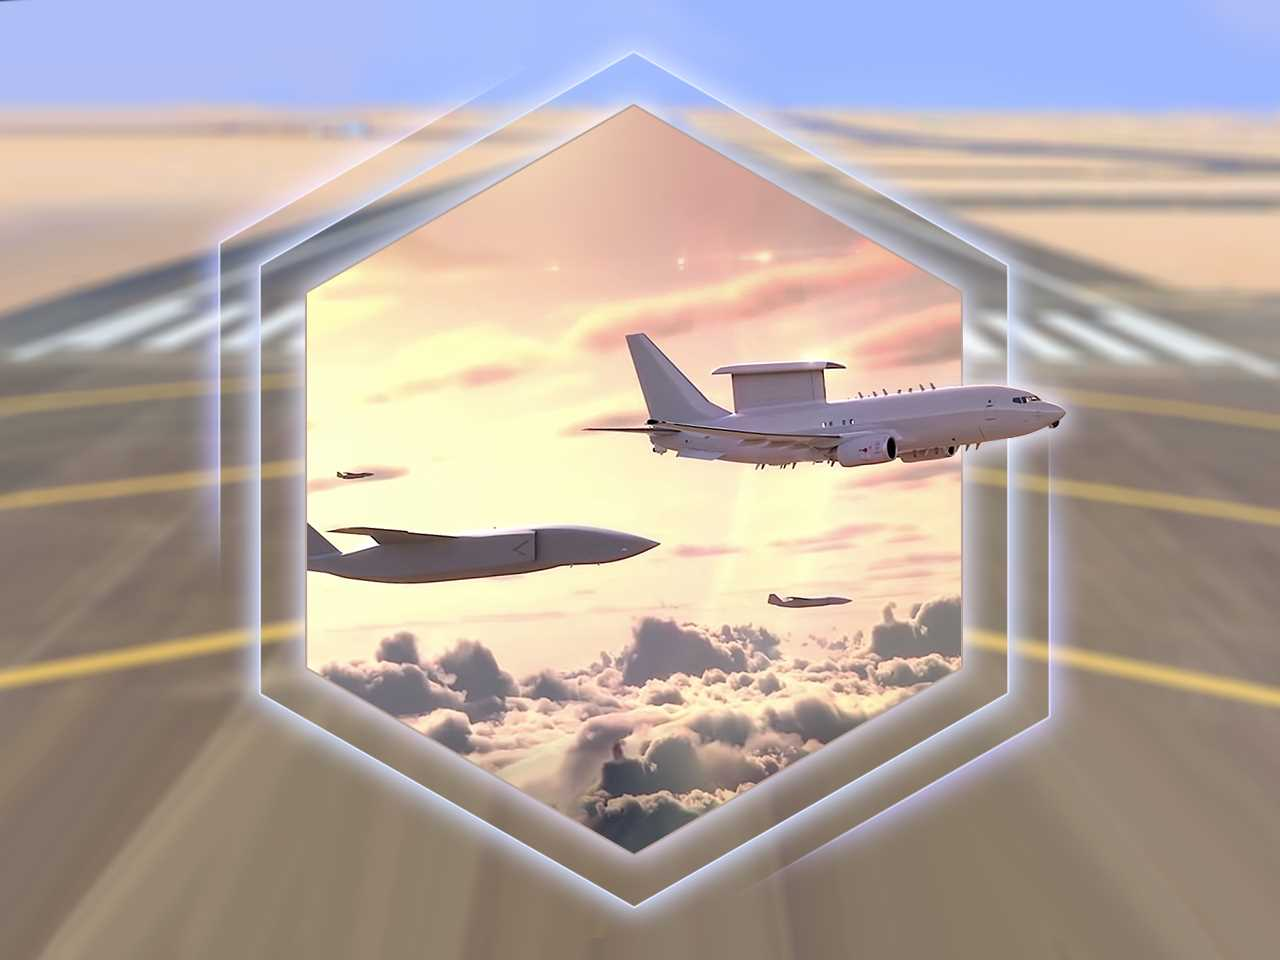 LG_MAGAZINE_Banner_Airpower_Teaming (6).jpg